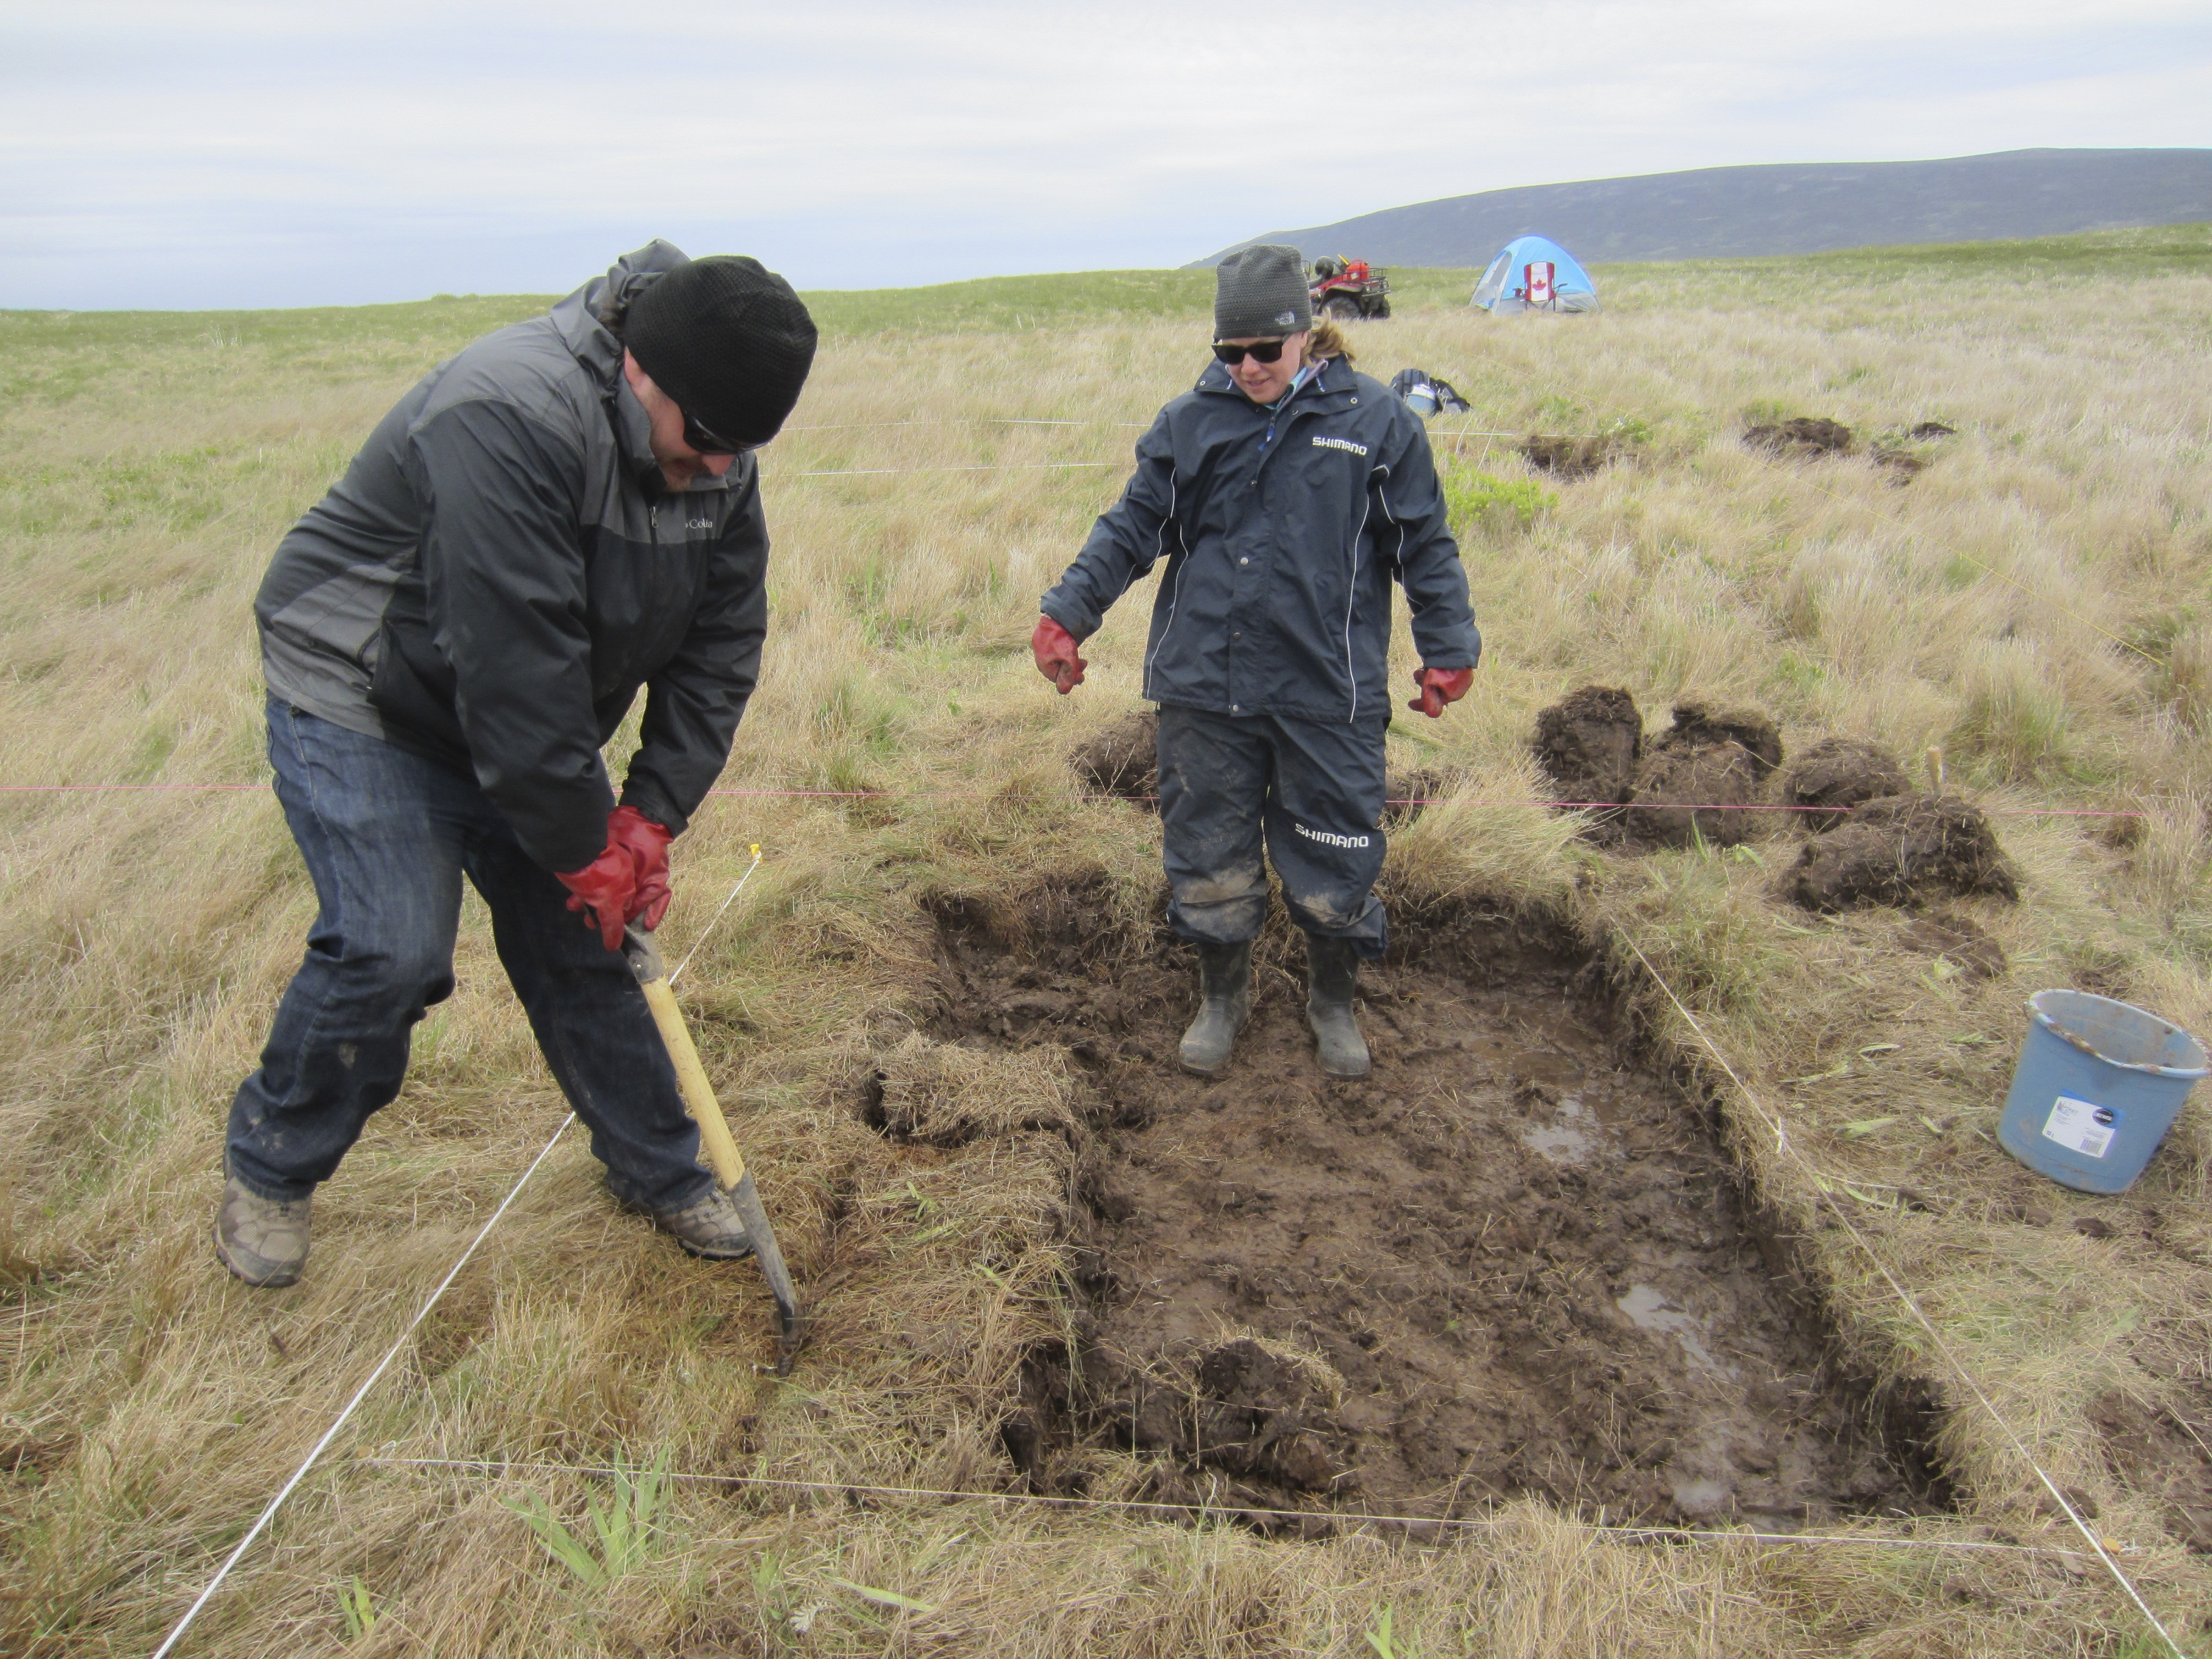 This undated handout photo shows archaeologists Sarah Parcak, right, and Chase Childs looking for a Viking presence in Point Rosie, Newfoundland, Canada. The site may be the second known Viking settlement in North America.